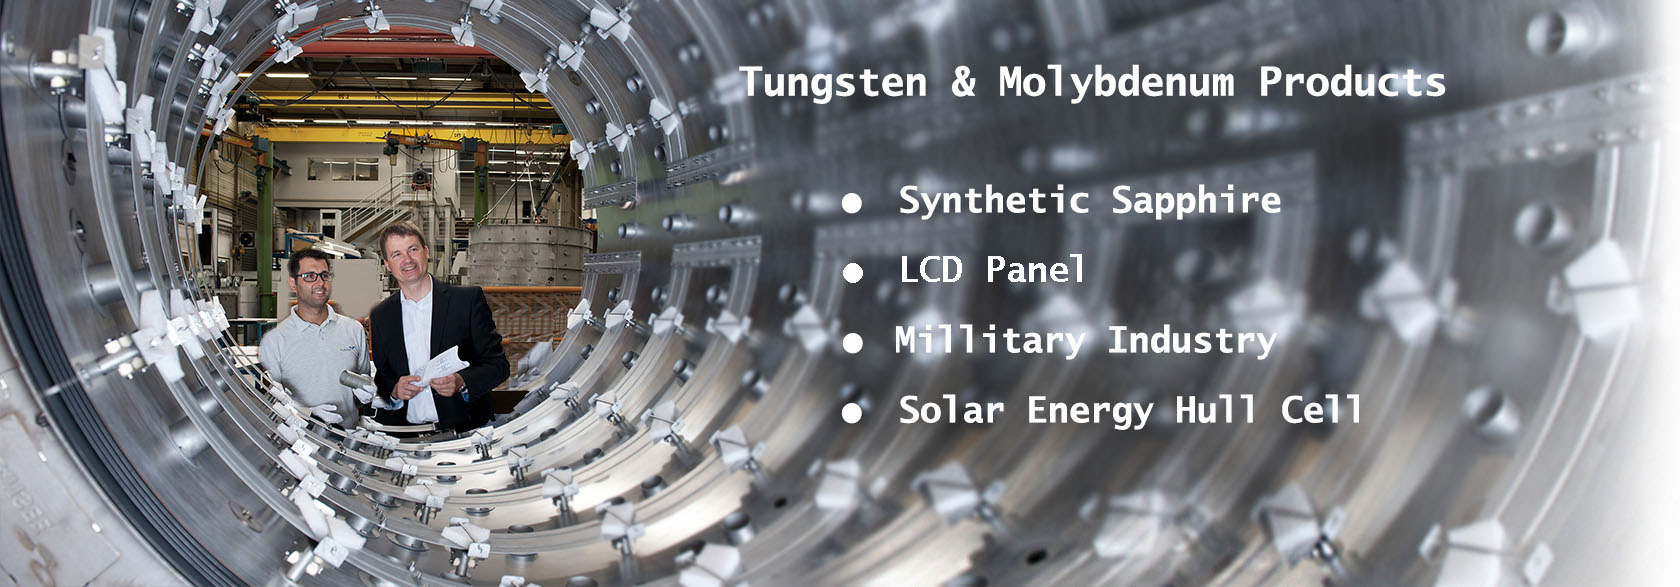 Tungsten and molybdenum products for Synthetic Sapphire LCD Panel Solar energy hull cell Military Industry